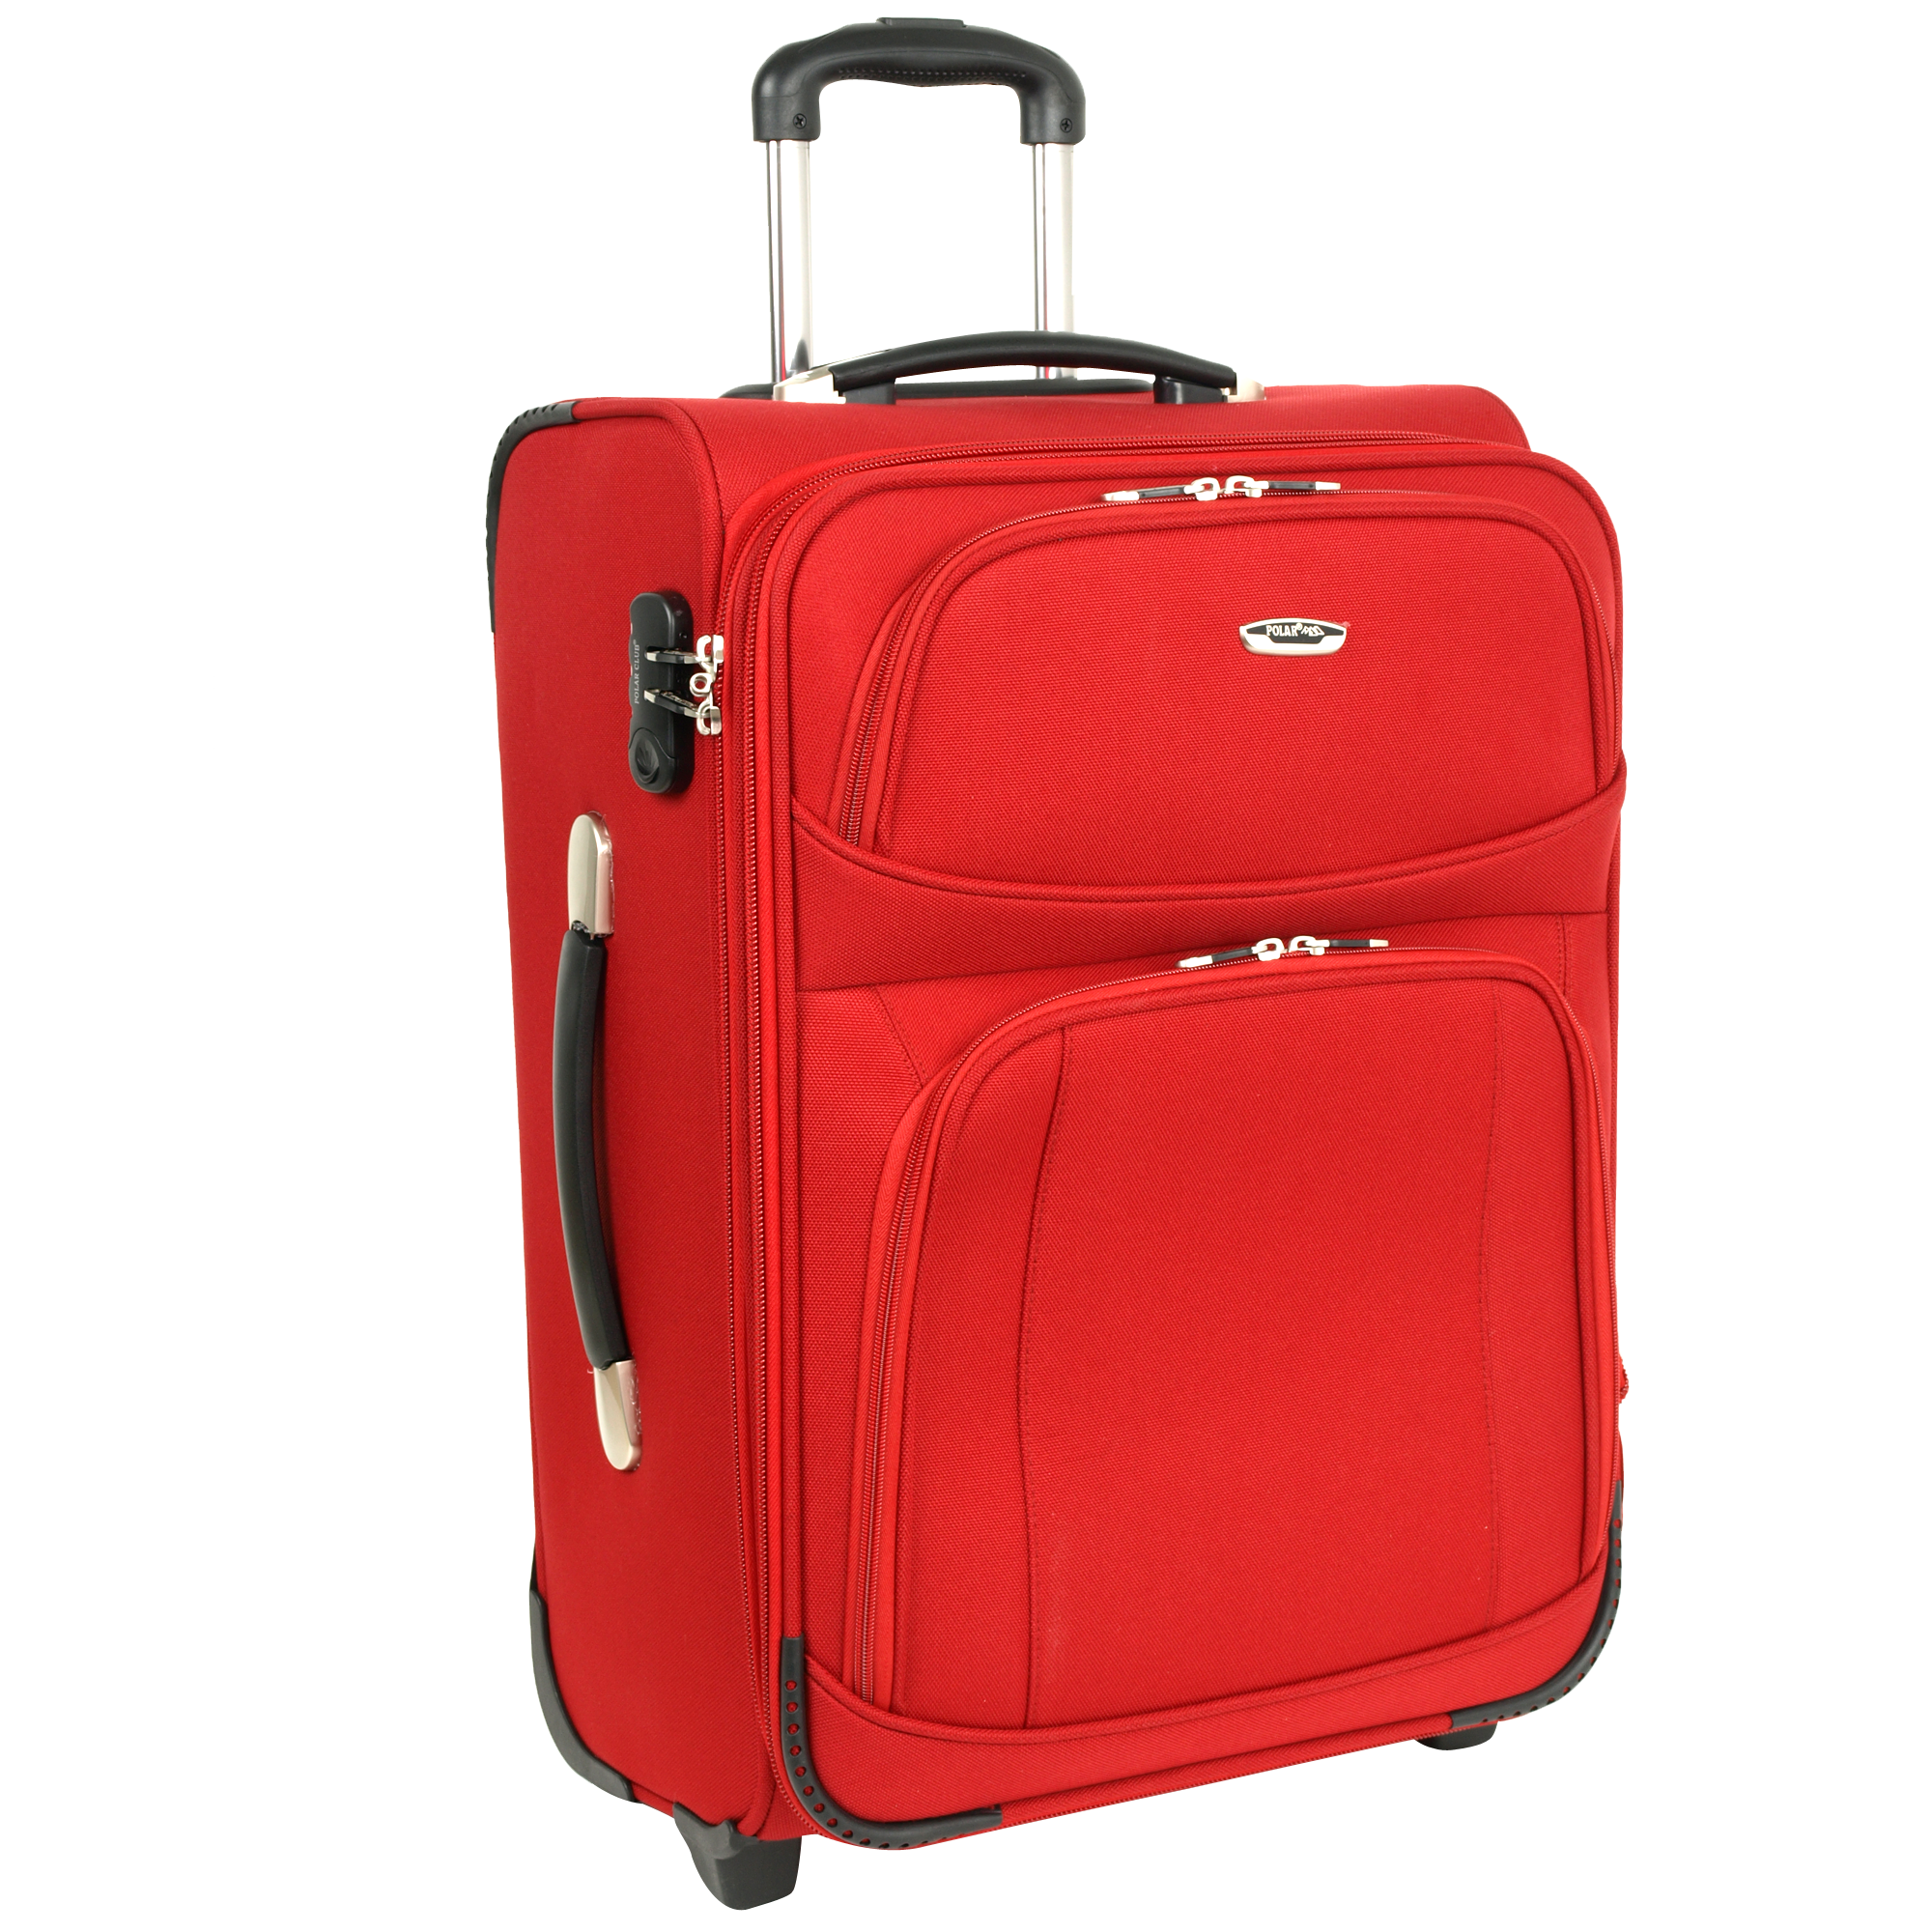 vector royalty free stock Suitcase transparent background. Red png image purepng.